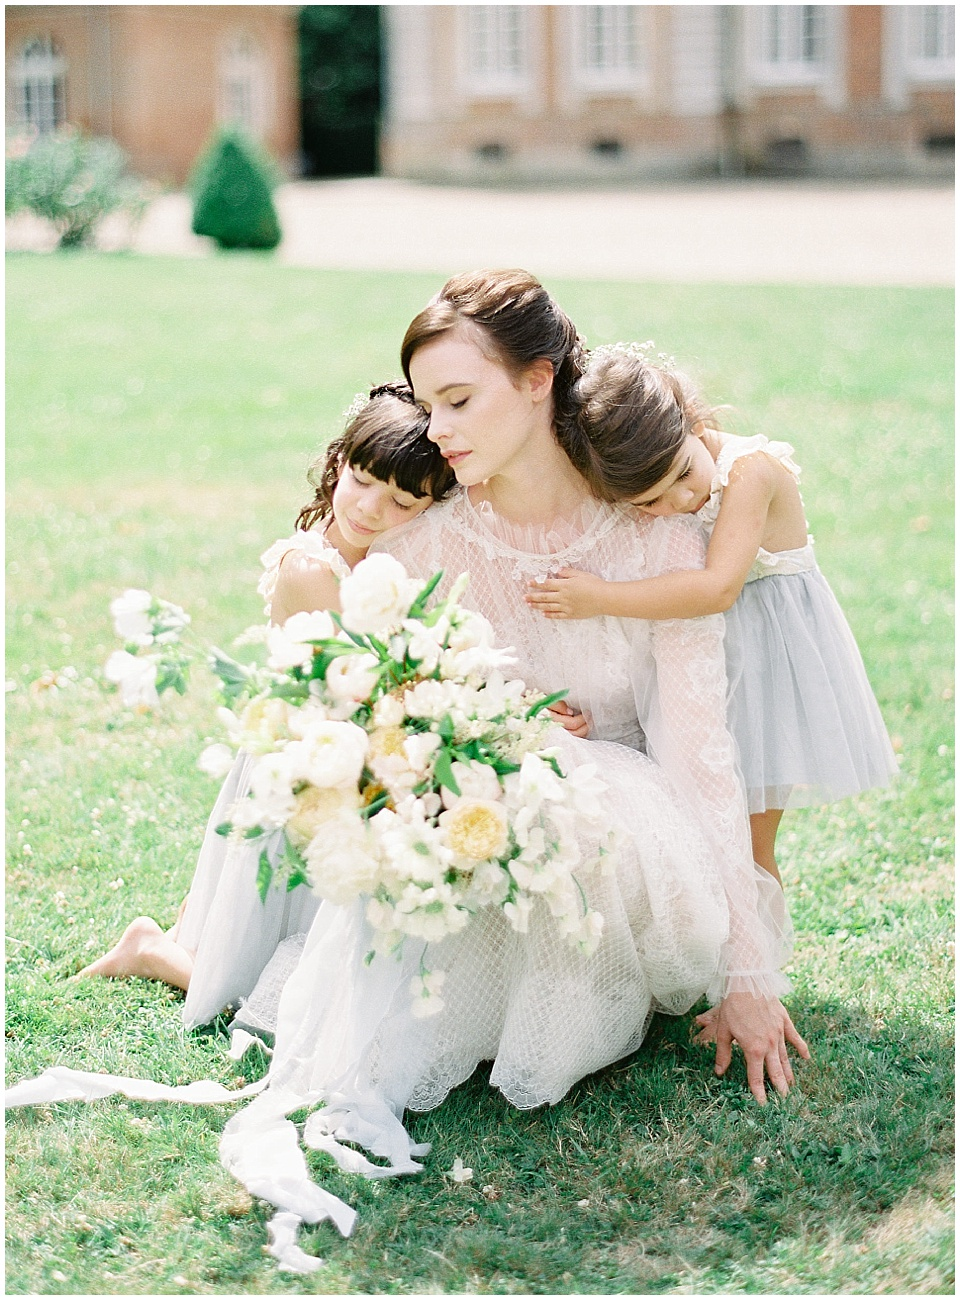 Light blue flower girl dress | Bows and Arrows florals | Bridal Bouquet | White green pale orange blush bridal bouquet | Yolan Cris wedding gown | French Wedding Inspiration | France Wedding | Destination Film Photographer | Paris Wedding | Fine Art Film Photographer | Chateau De Carsix | Whiskers and Willow Photography